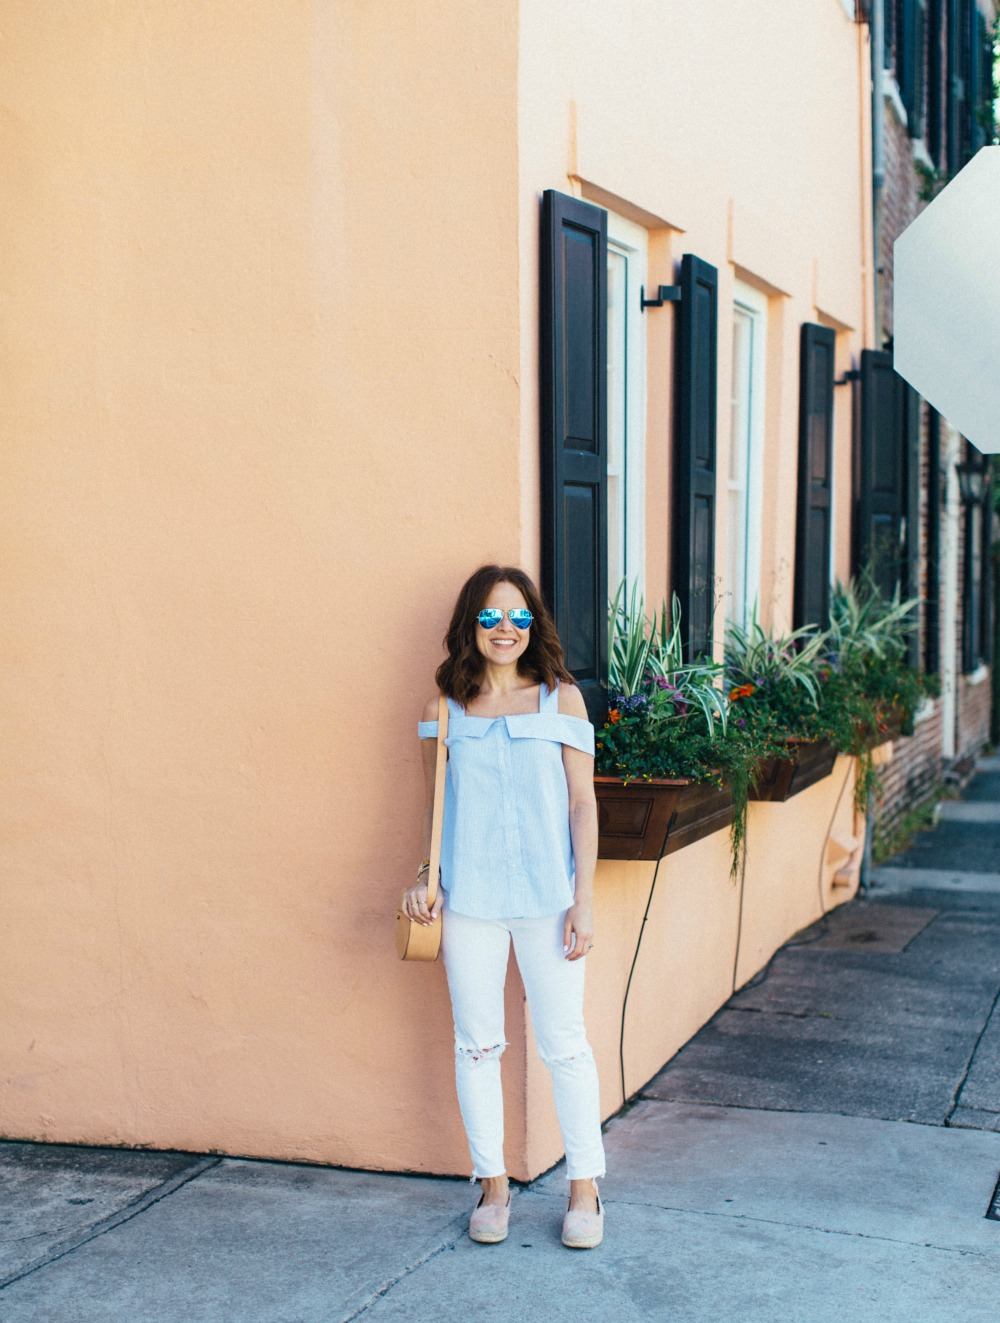 classic summer uniform in blue & white // the modern savvy, a life & style blog